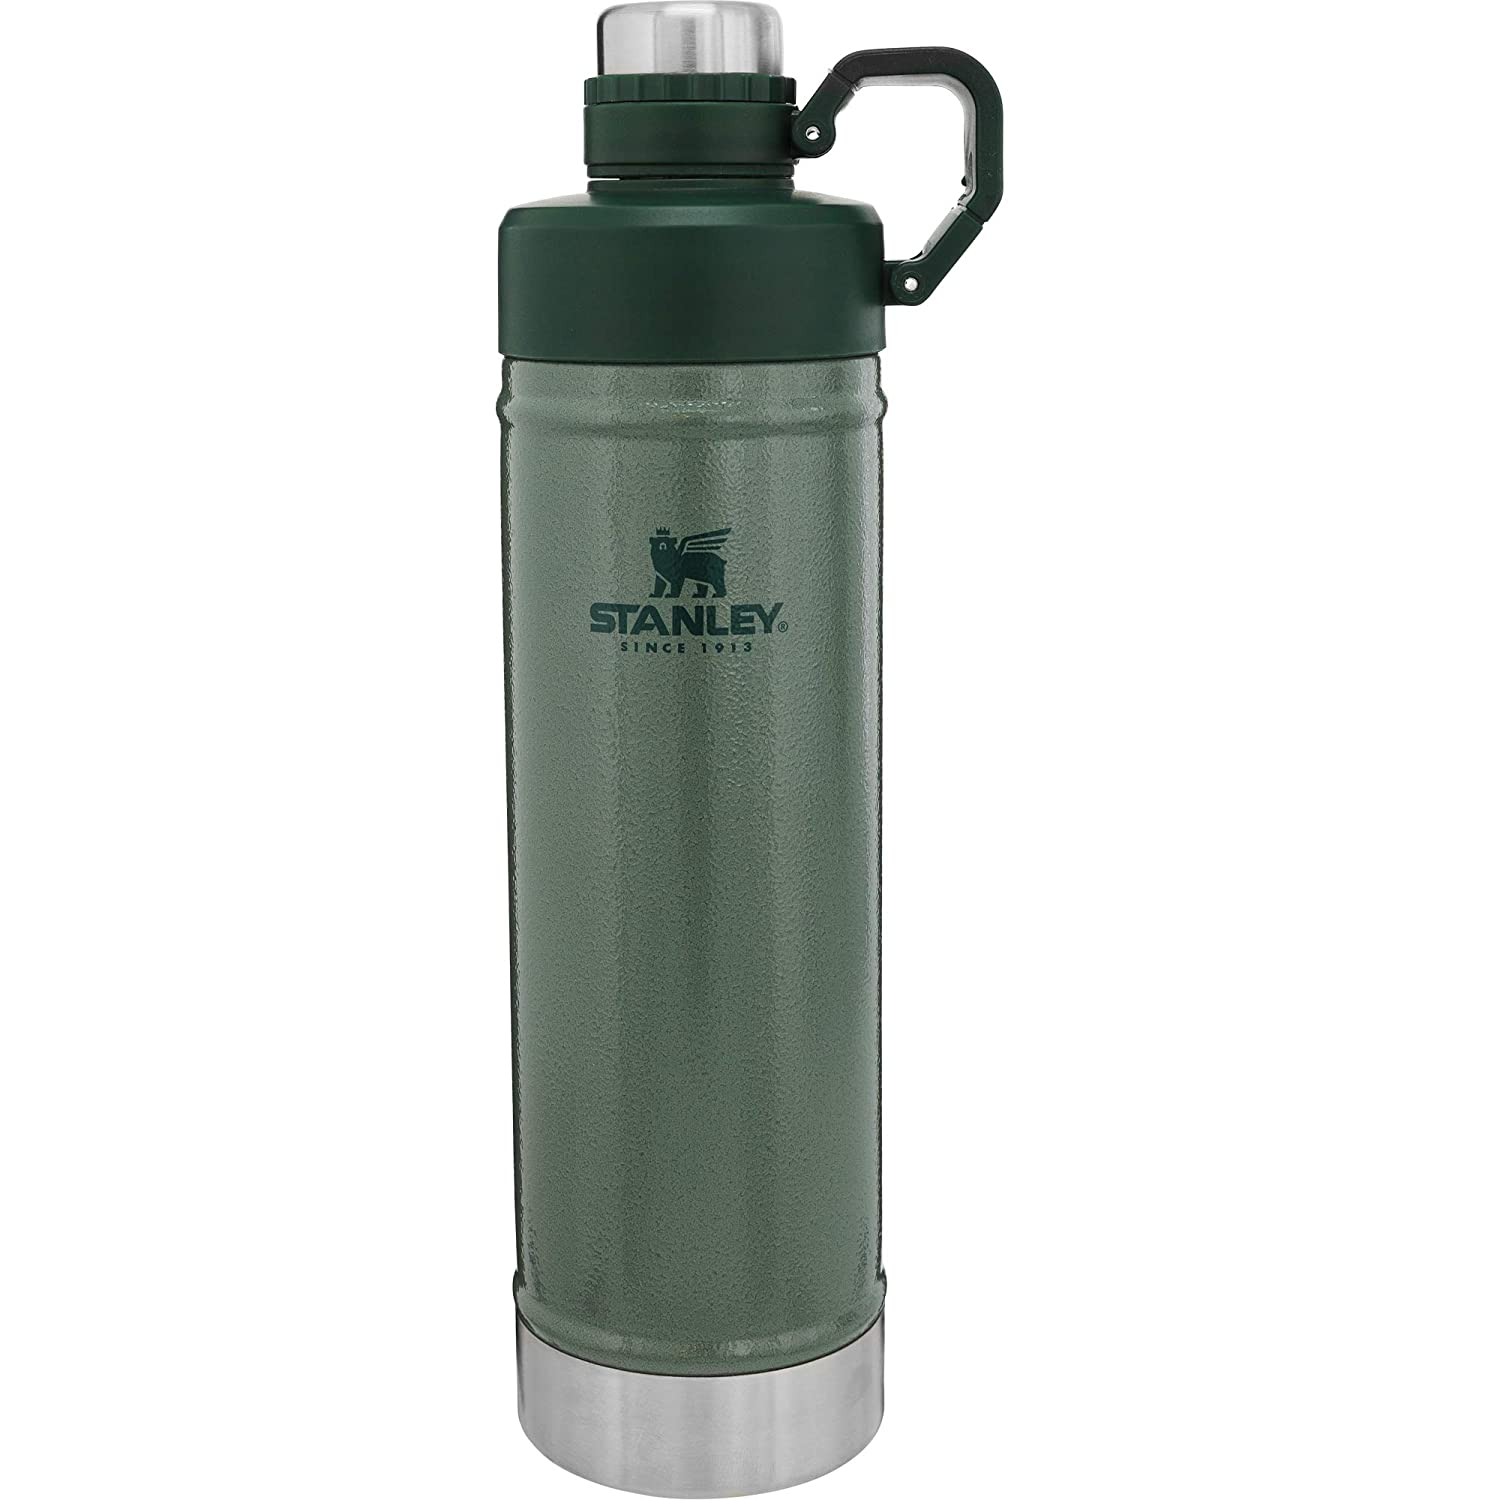 Stanley Classic Easy-Clean Water Bottle 25oz